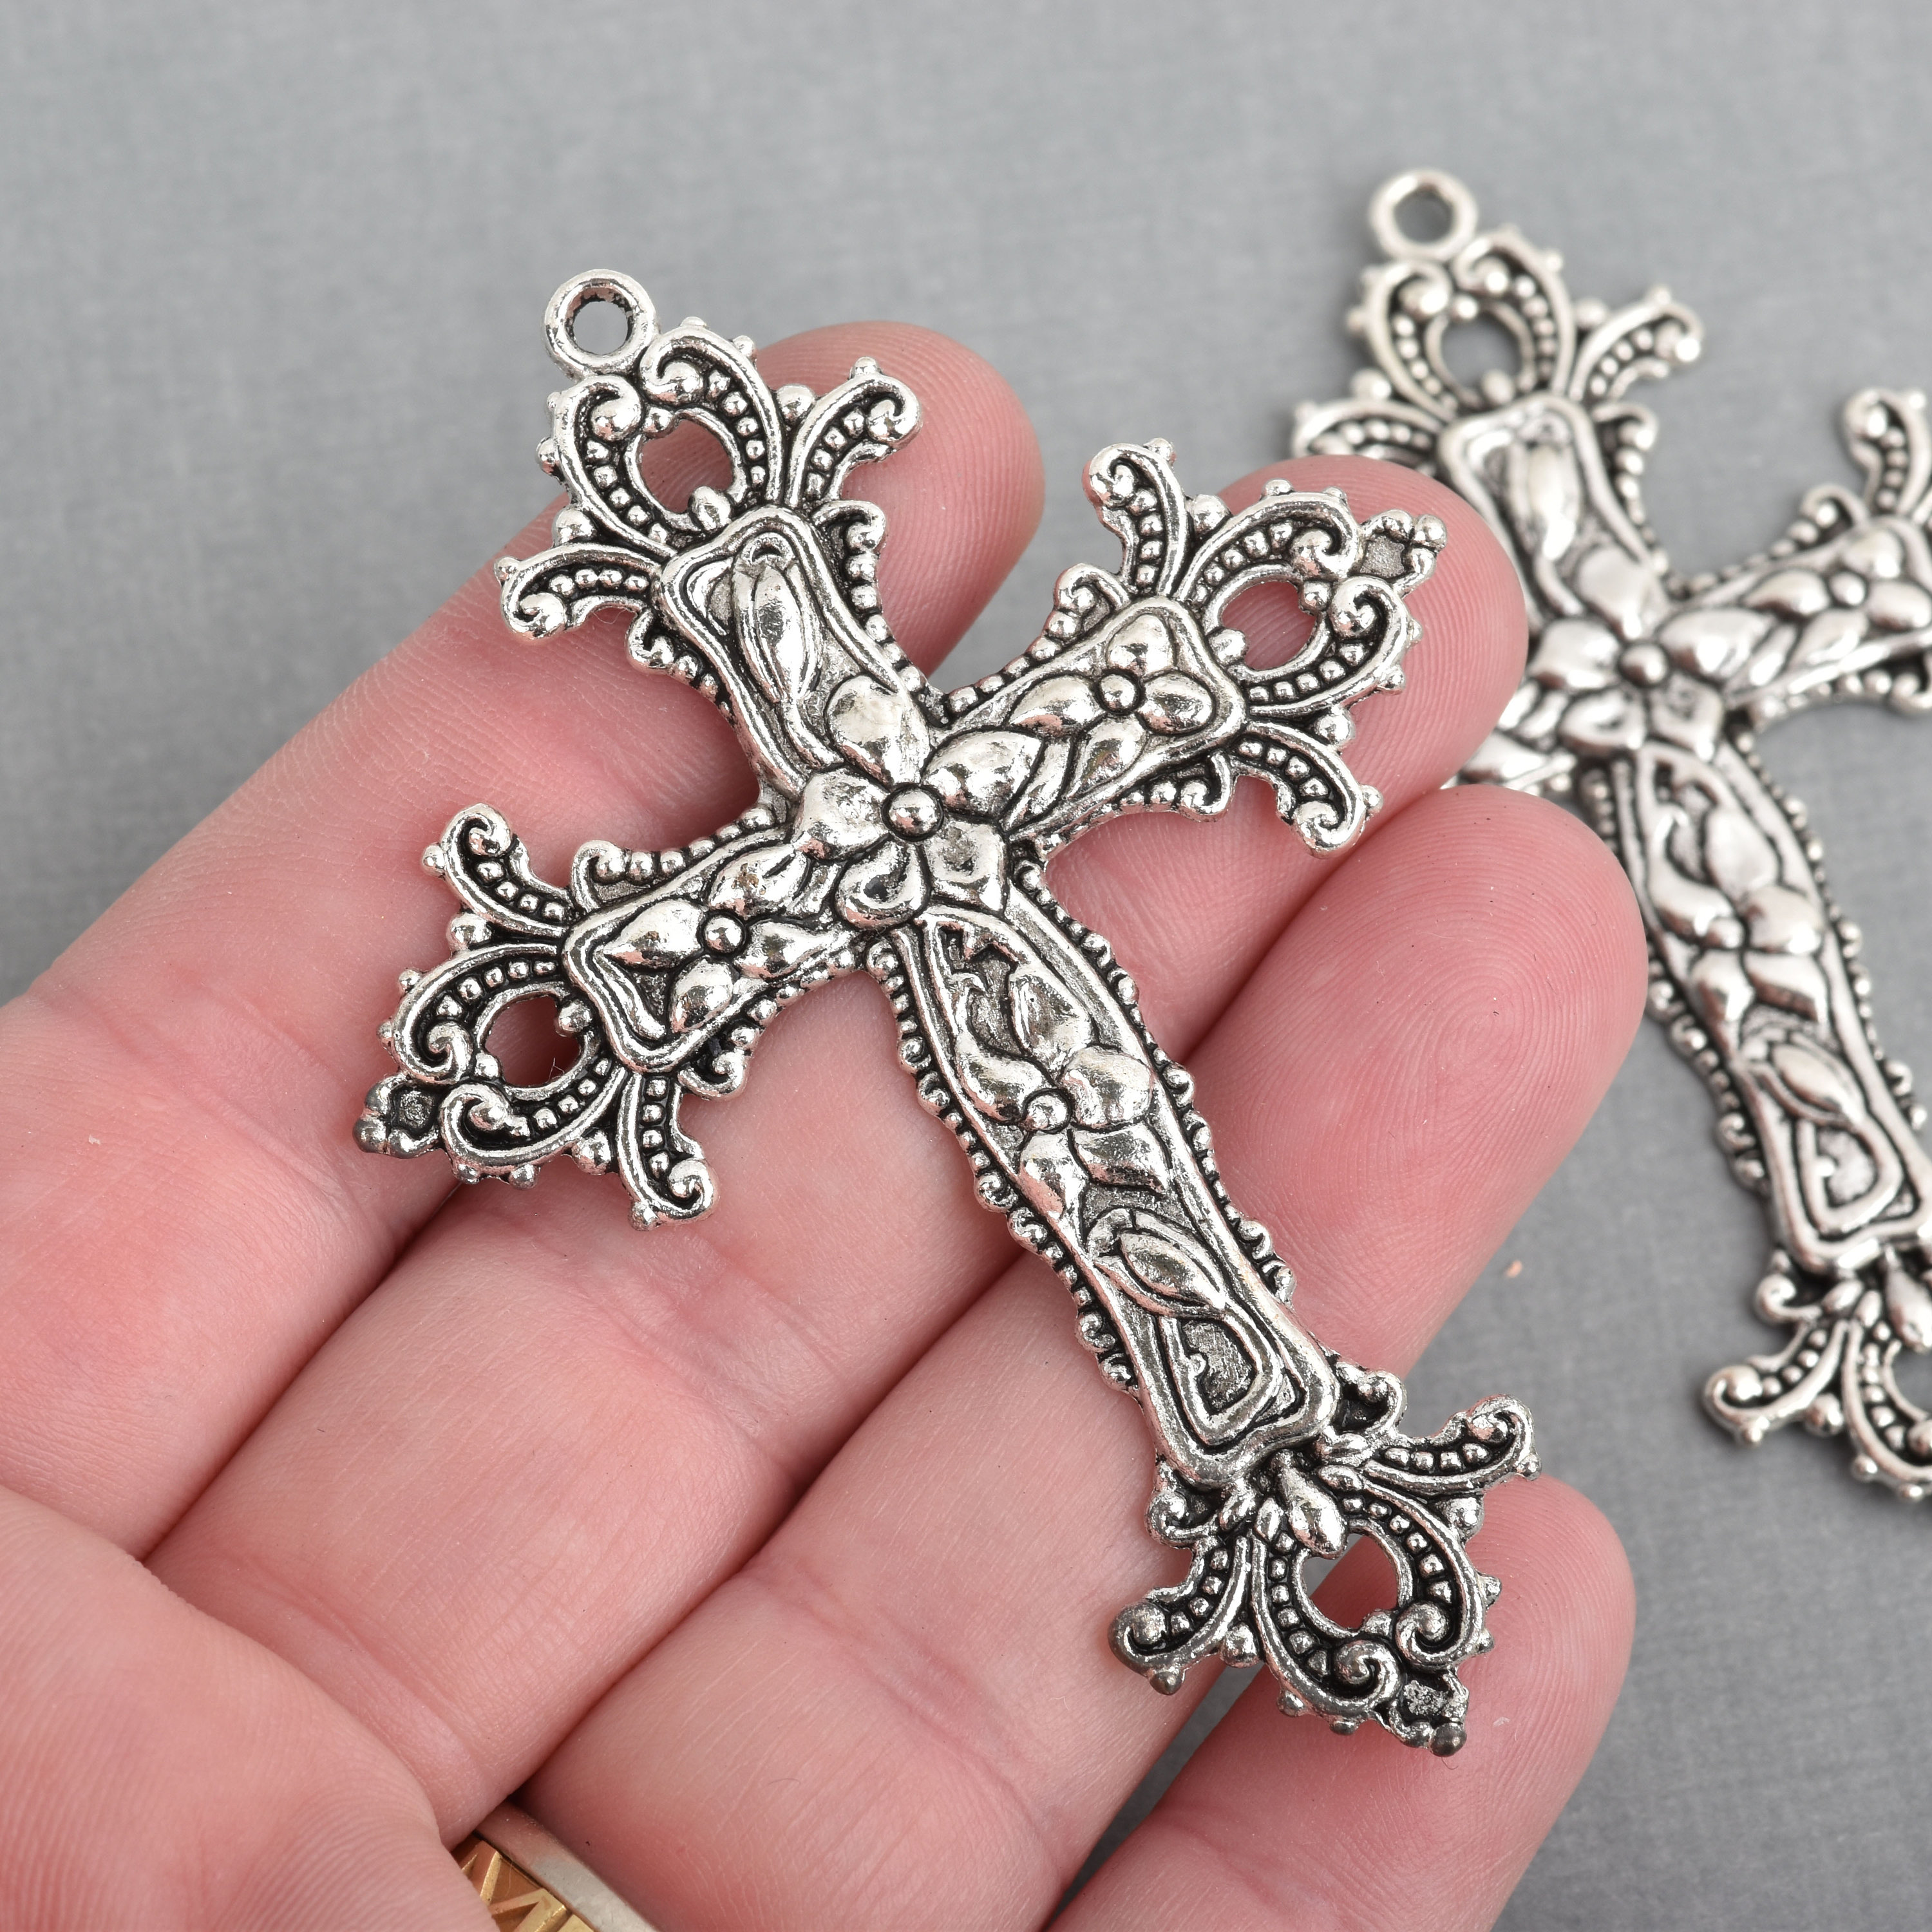 2 large silver cross pendants ornate floral and flourish detail 2 large silver cross pendants ornate floral and flourish detail 75x55mm chs4211 aloadofball Images